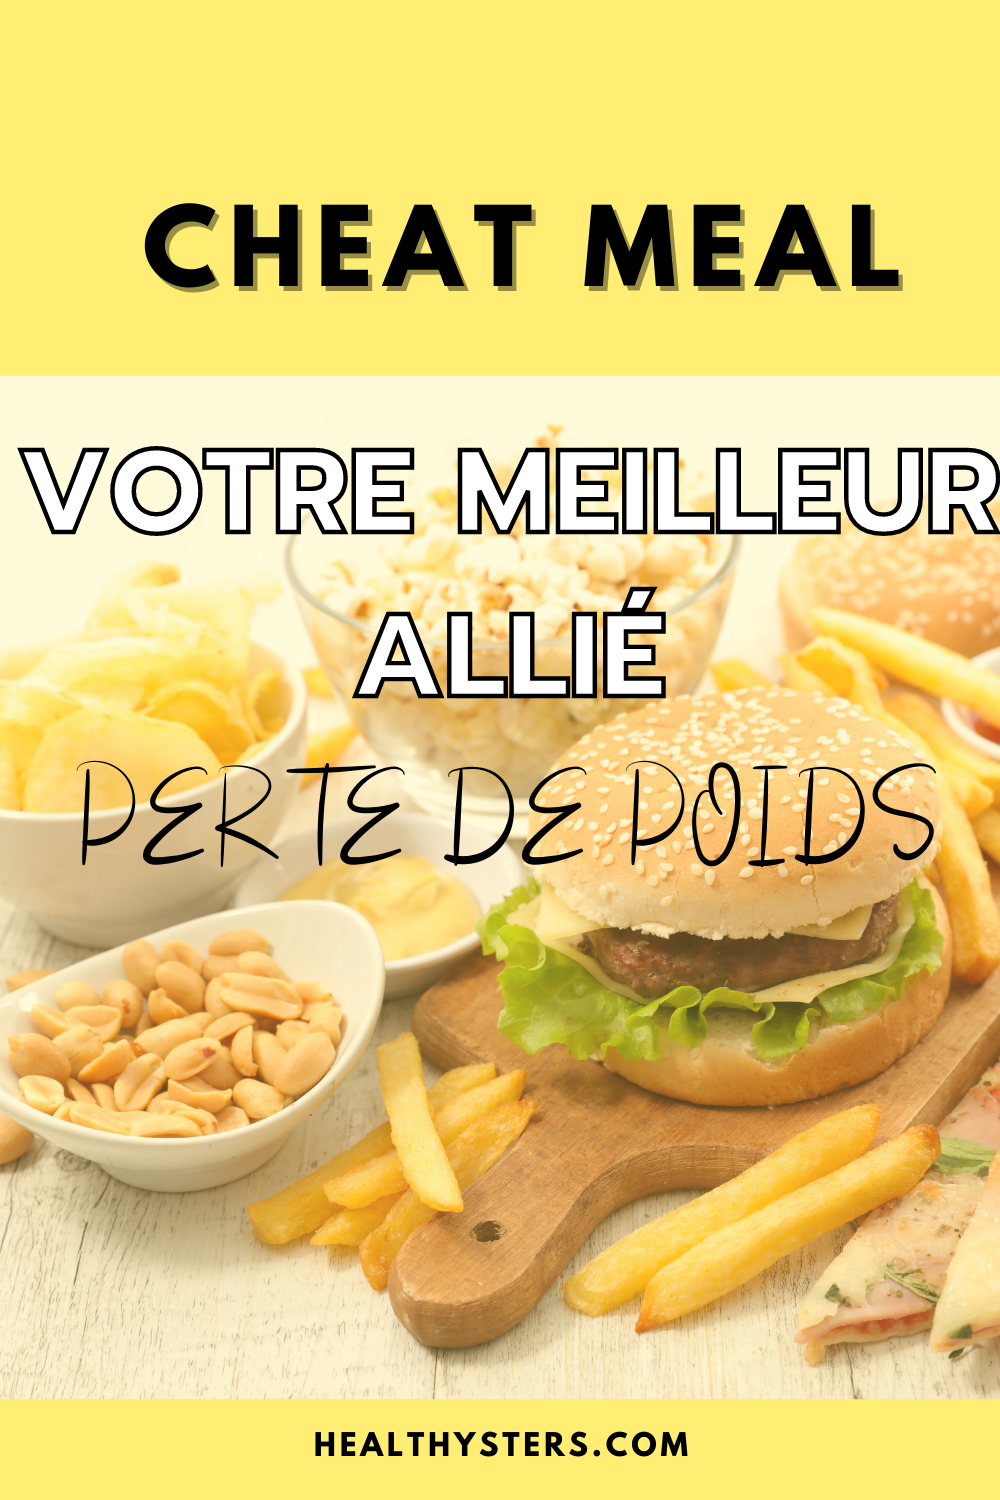 Cheat Meal Pinterest